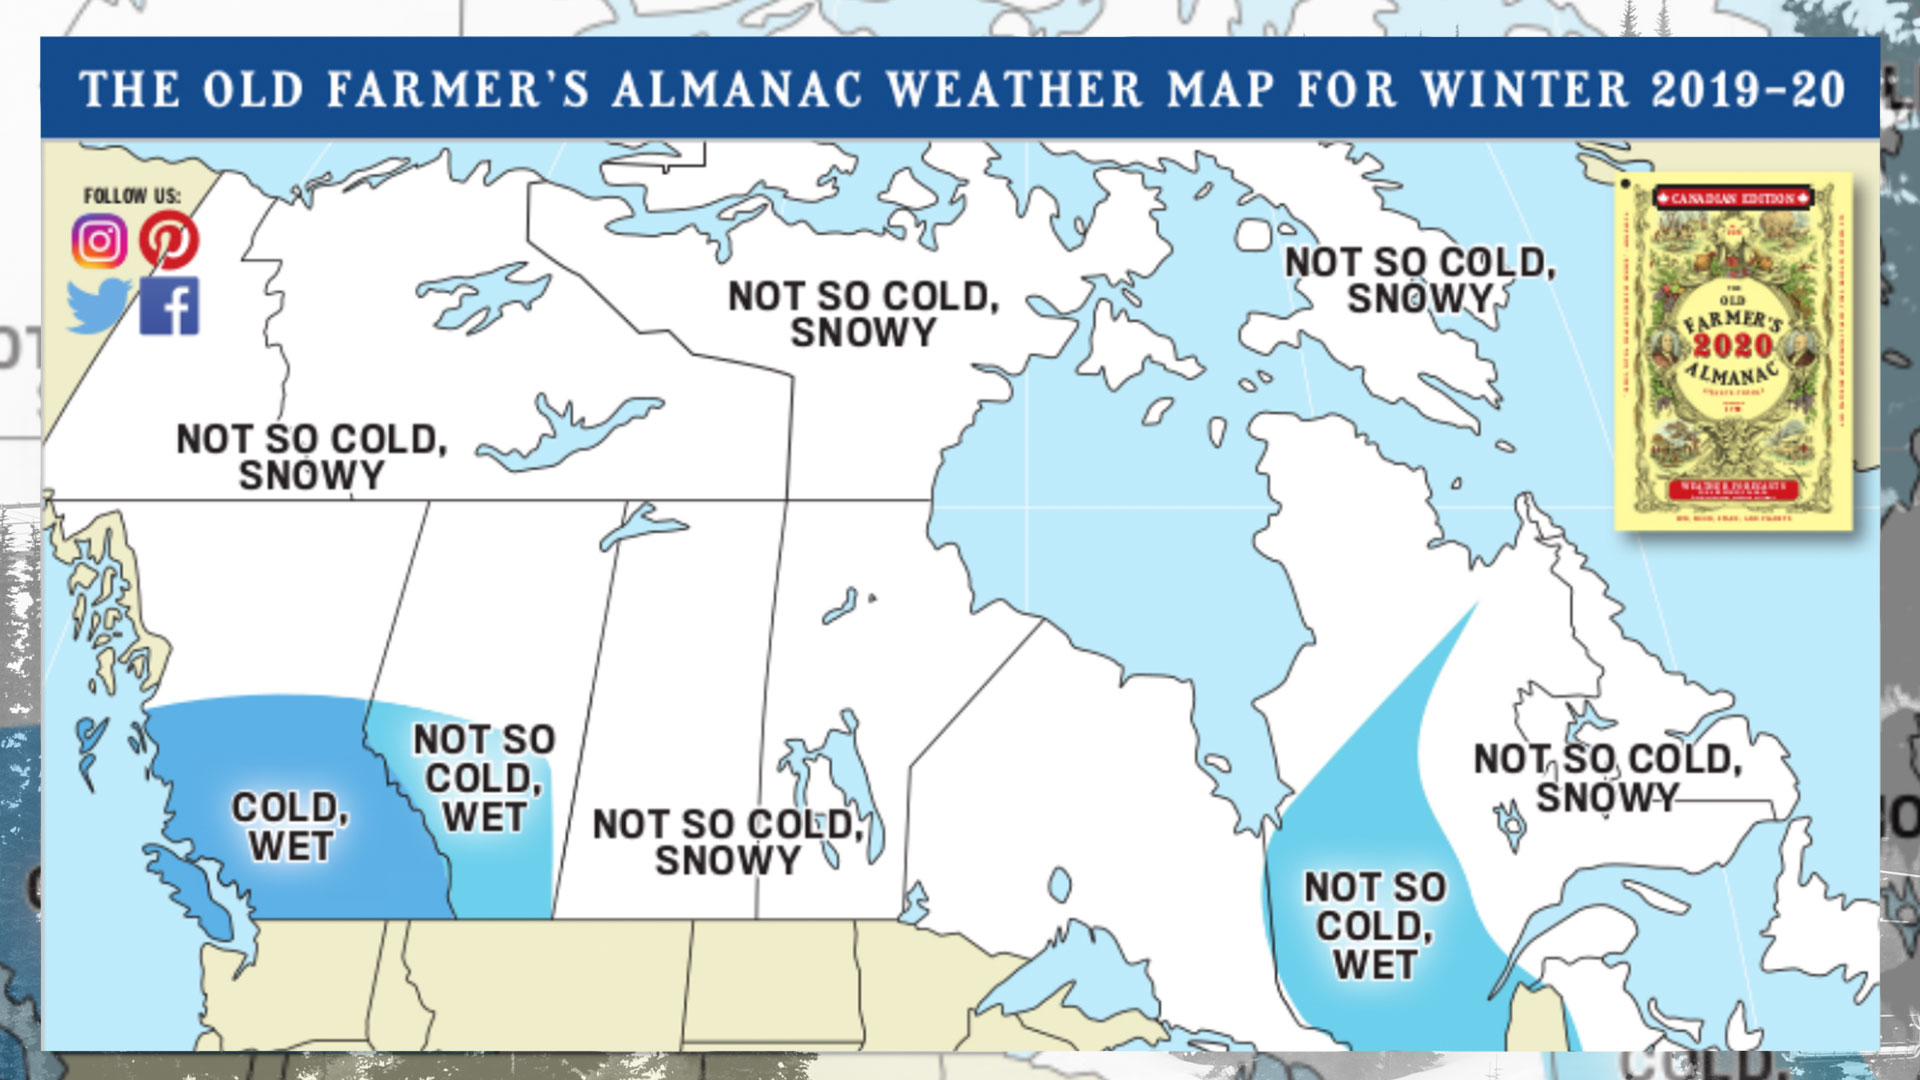 Old Farmer's Almanac Winter Weather Forecast 2020: Canada